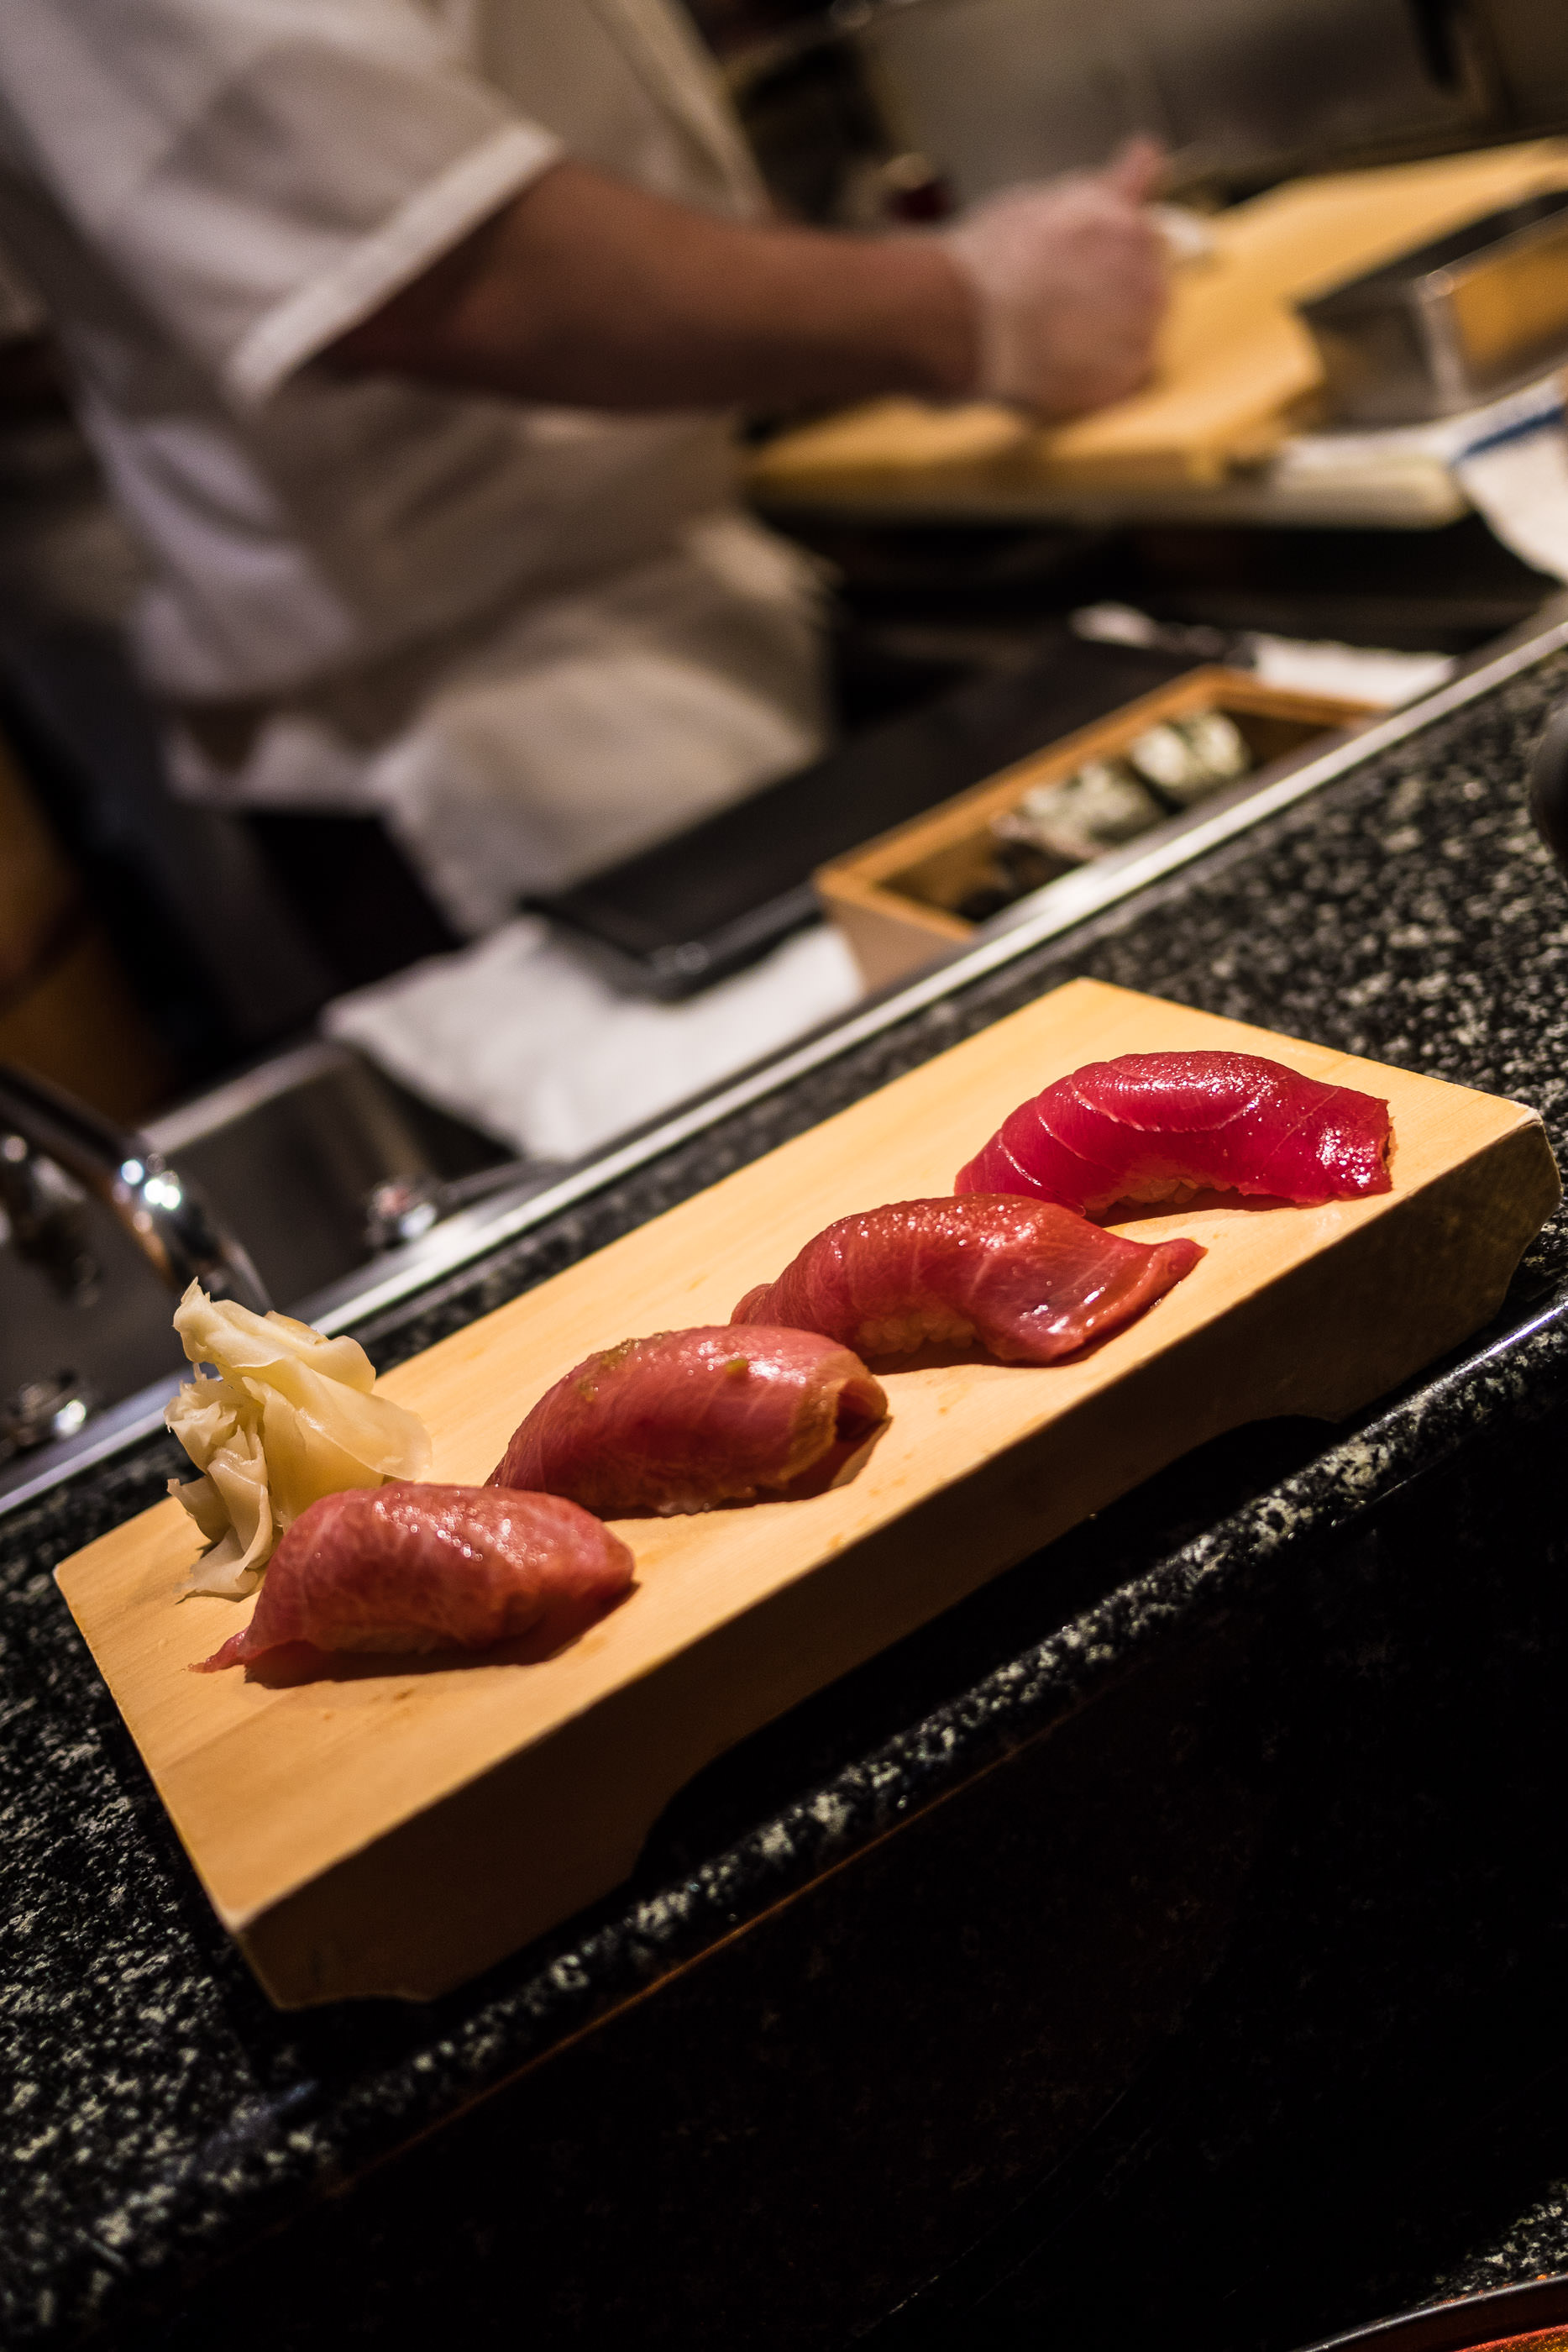 MYBELONGING-SEATTLE-CITY-GUIDE-SHIRO-SUSHI-OMAKASE-UBER-FOOD-PHOTOGRAPHY-4.jpg